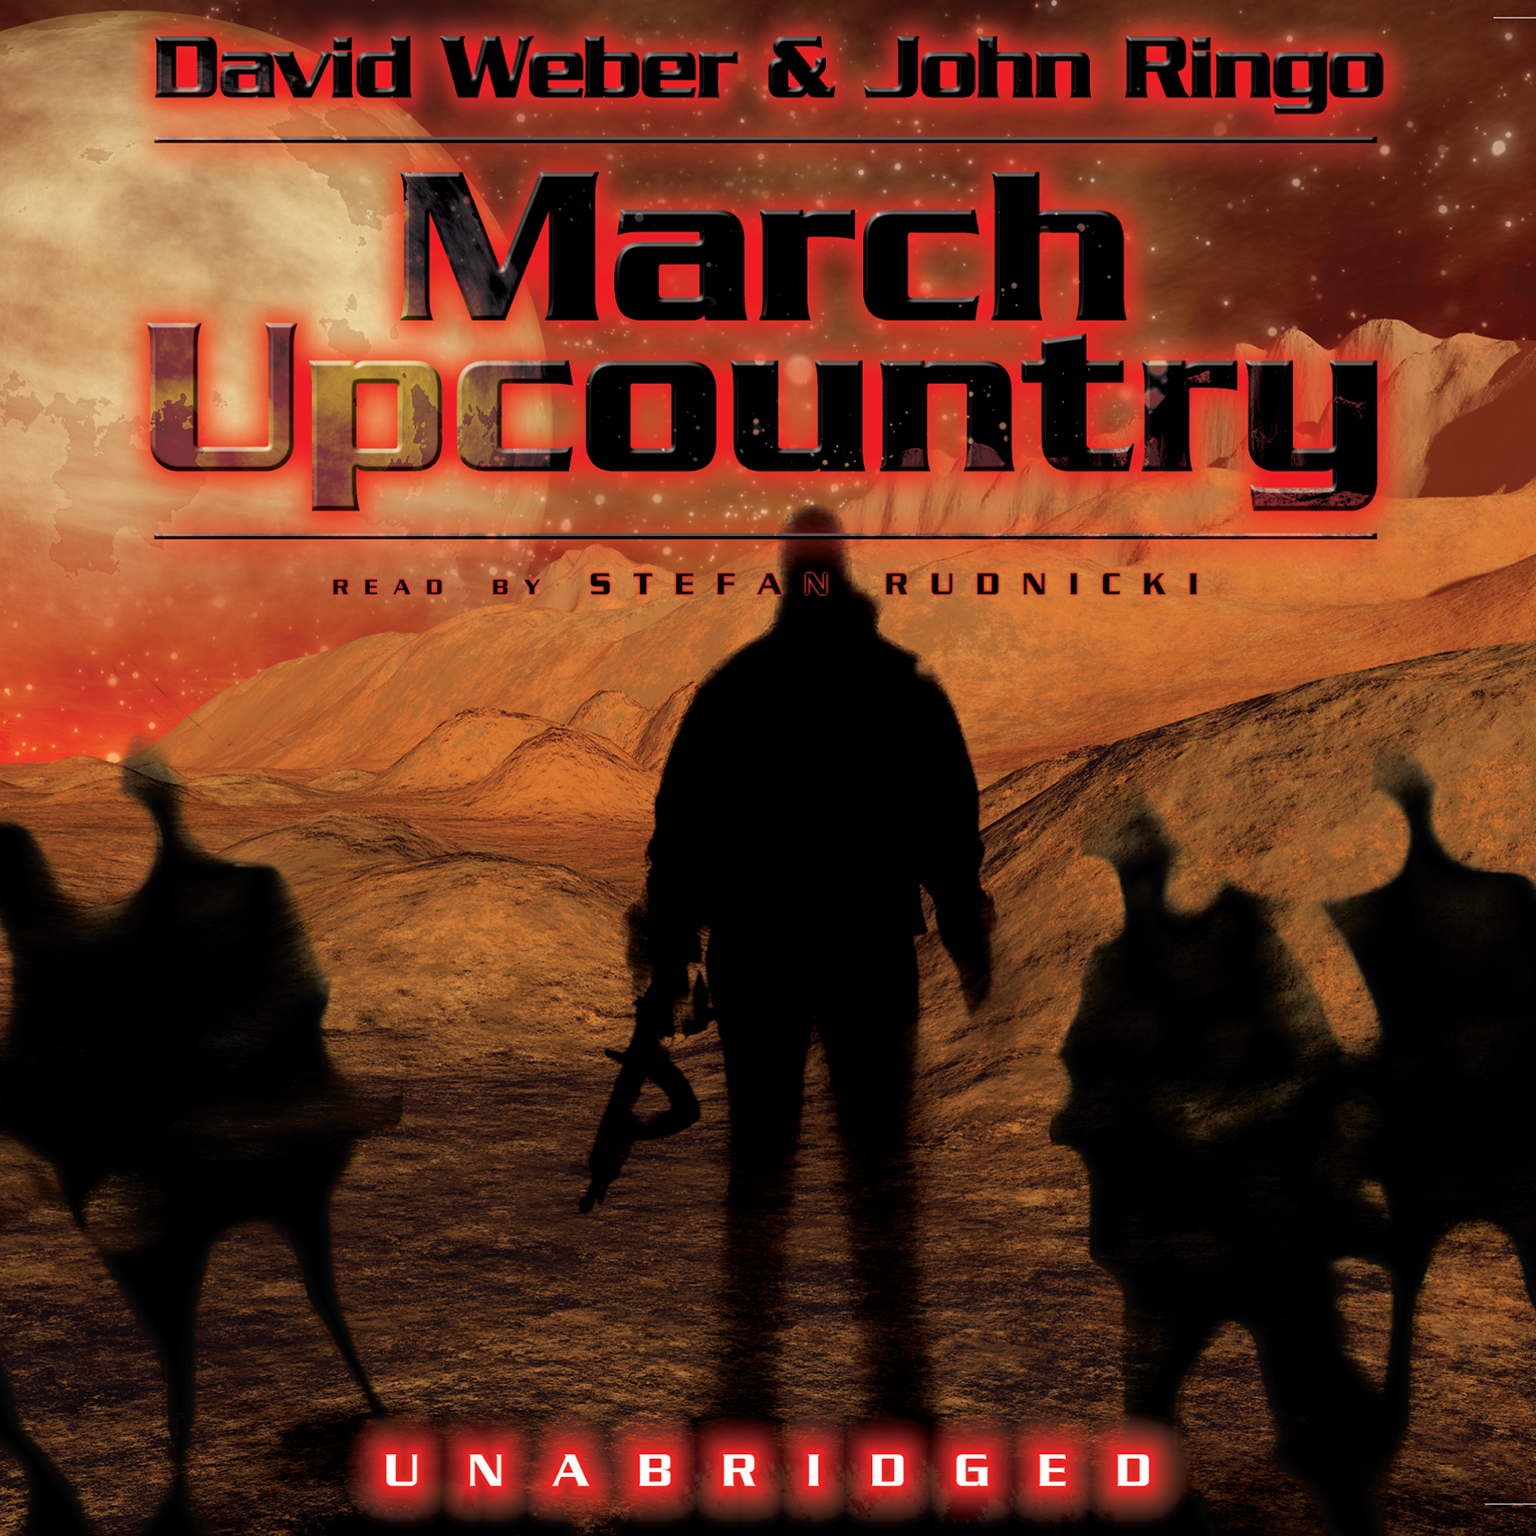 Printable March Upcountry Audiobook Cover Art